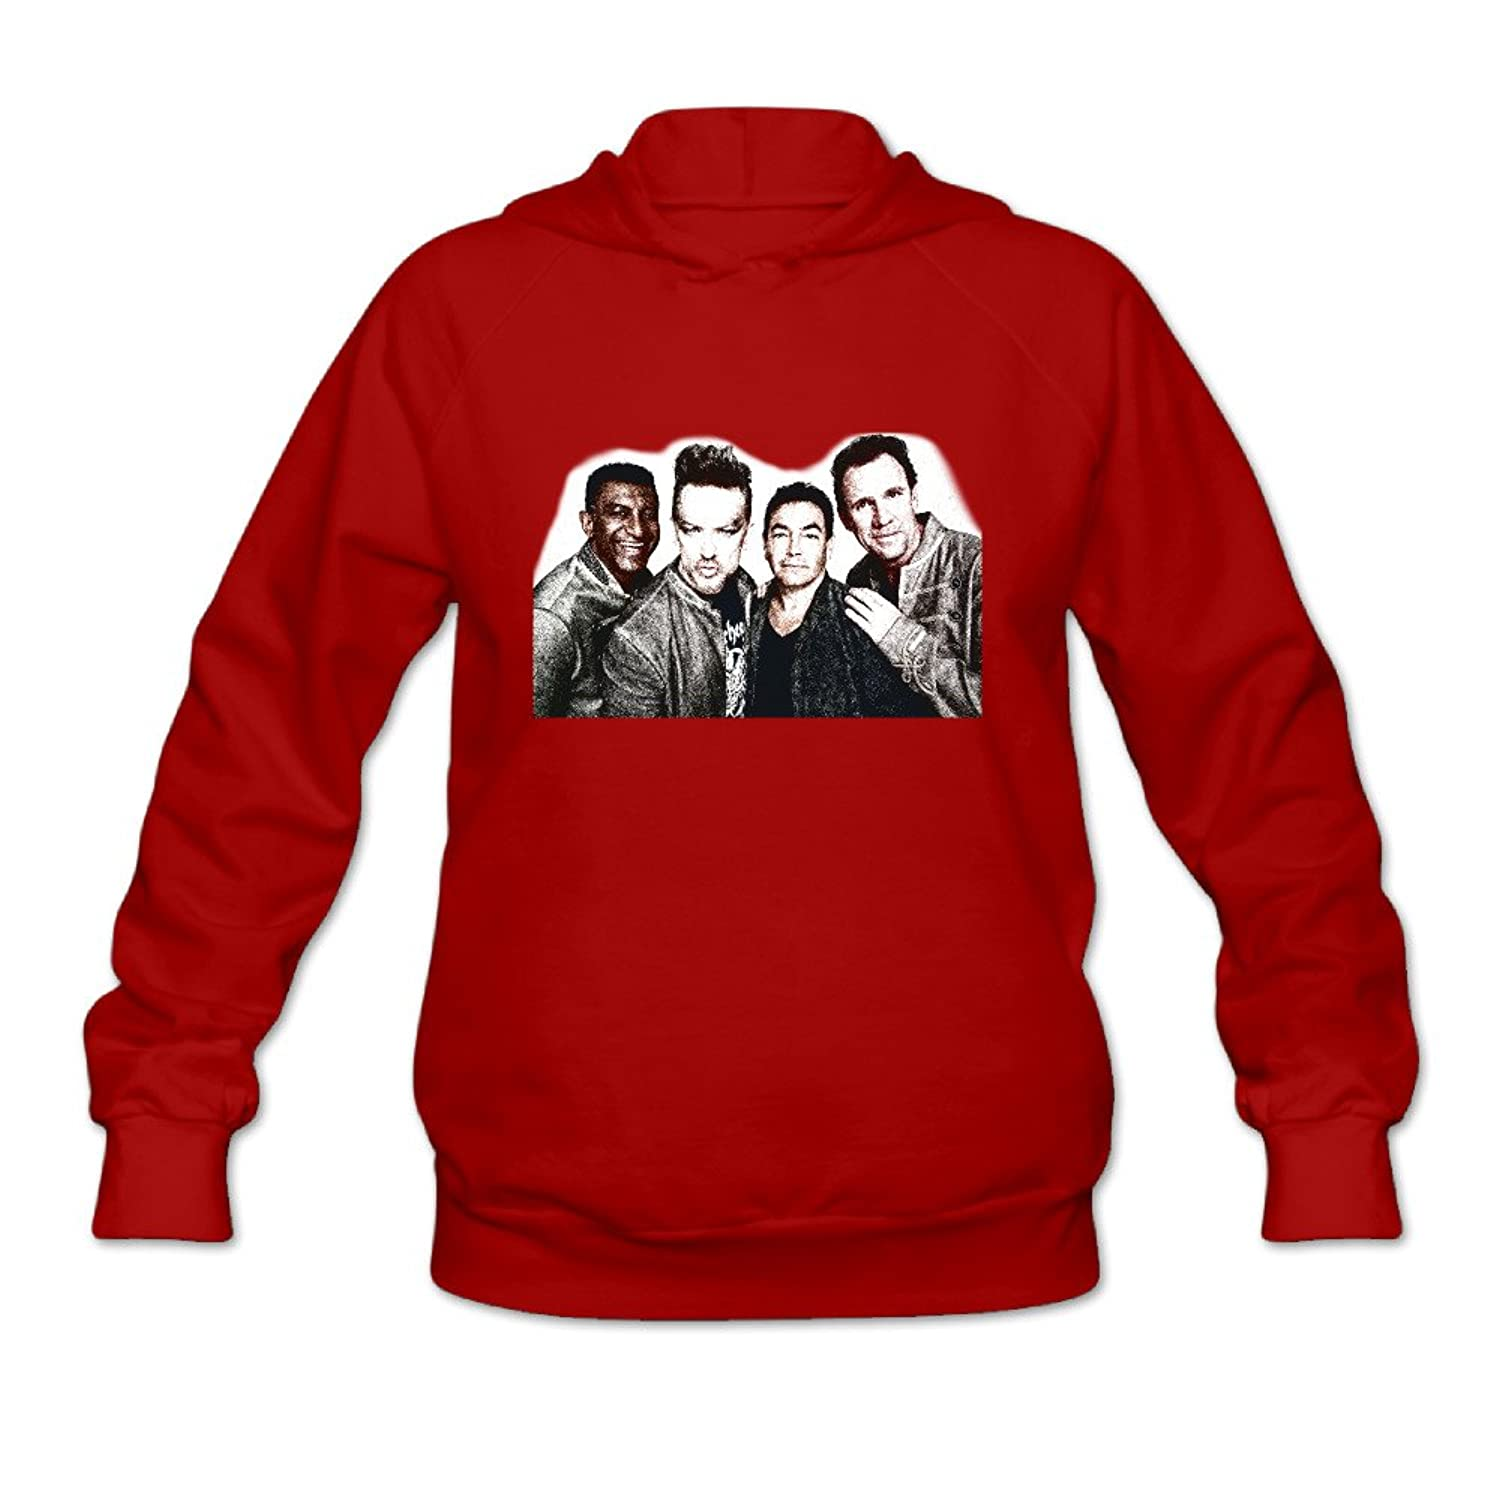 Woman's Autumn Culture Club Handsome Members Hoodies Shirts Red